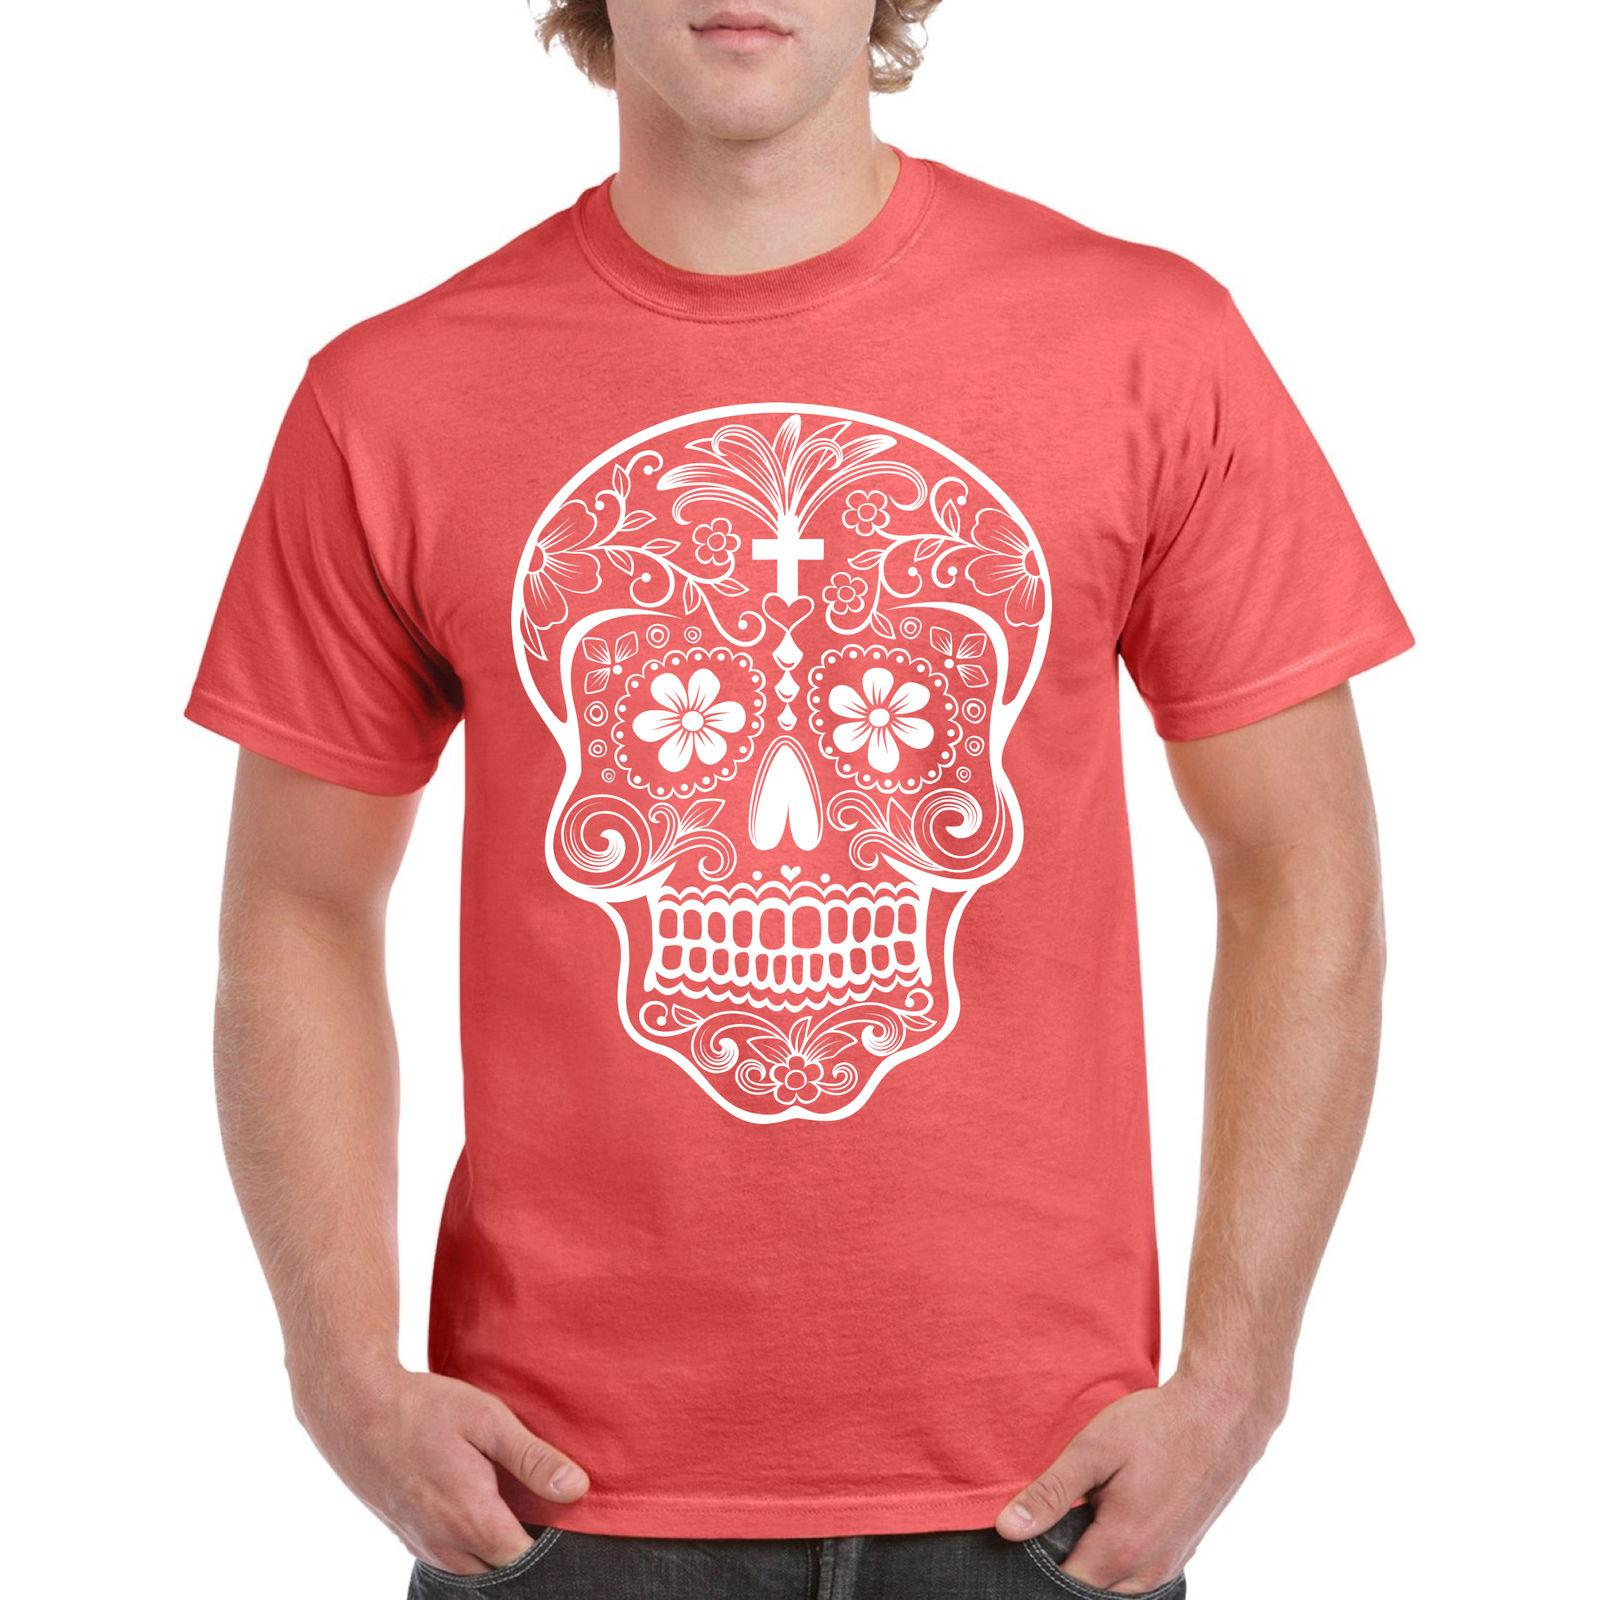 473717f1 Shirt Sugar Skull T Women Day Of Dead Tshirt Muertos Roses Dia De Los Pink  Tee S Funny Unisex Casual Tshirt Cool T Shirts Buy Online Raid Shirt From  ...